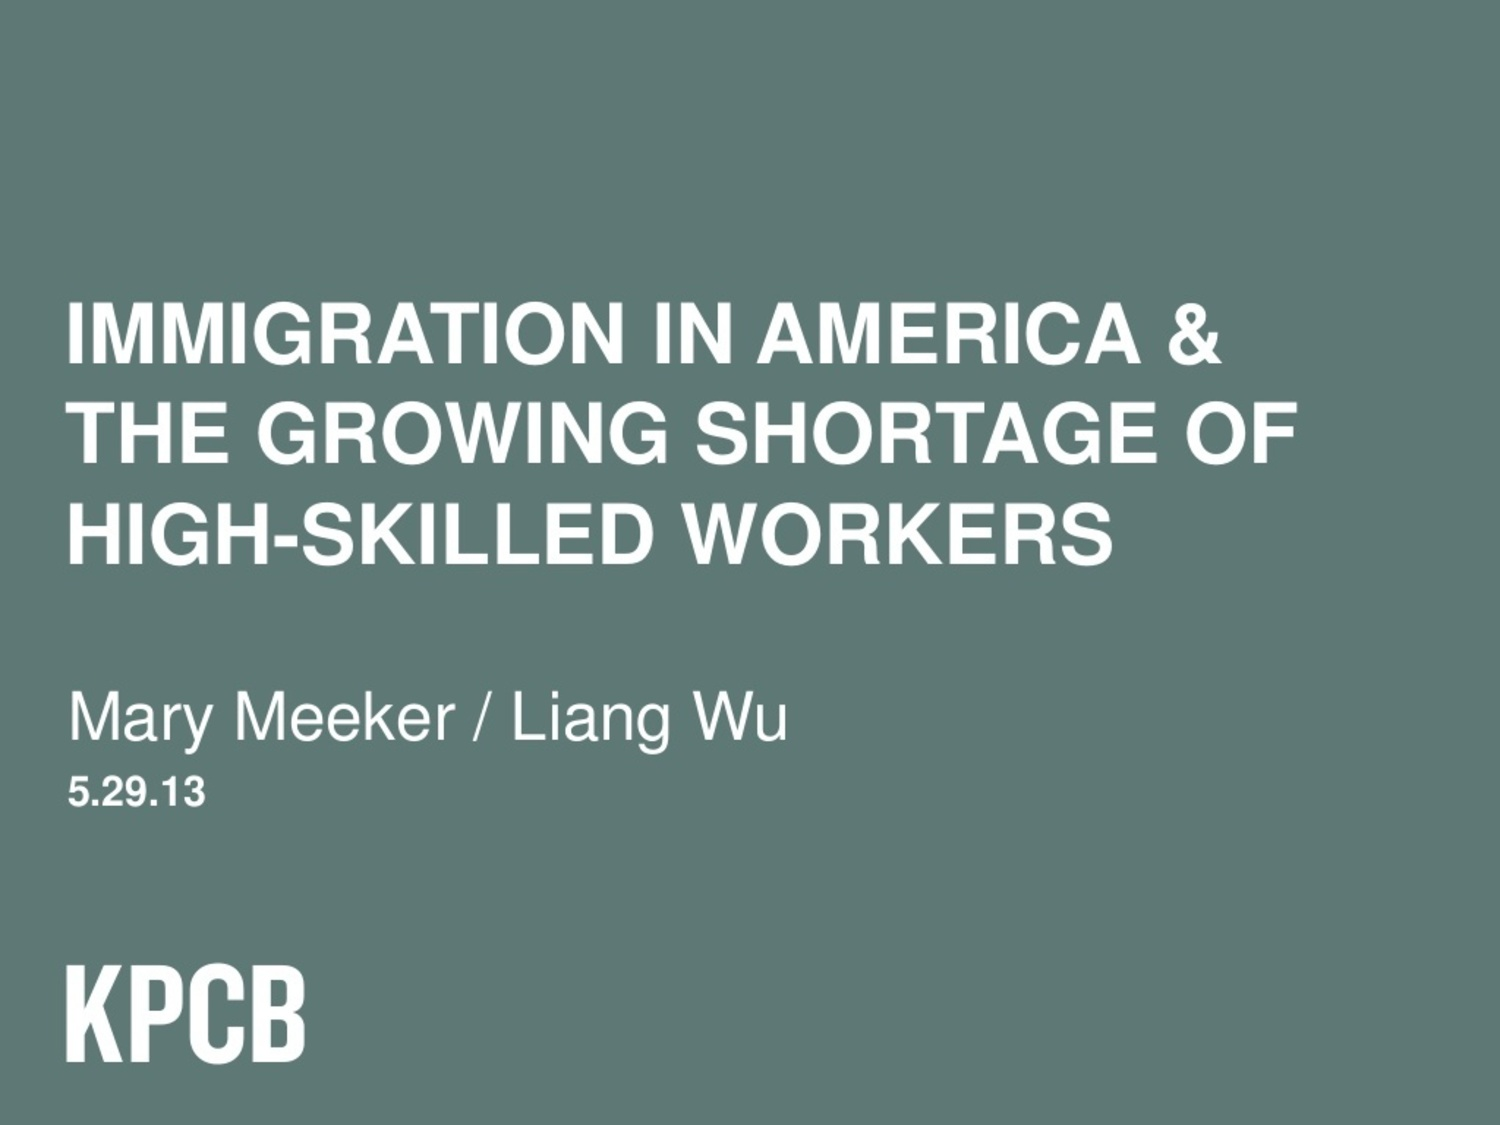 Immigration in America & The Growing Shortage of High-Skilled Workers